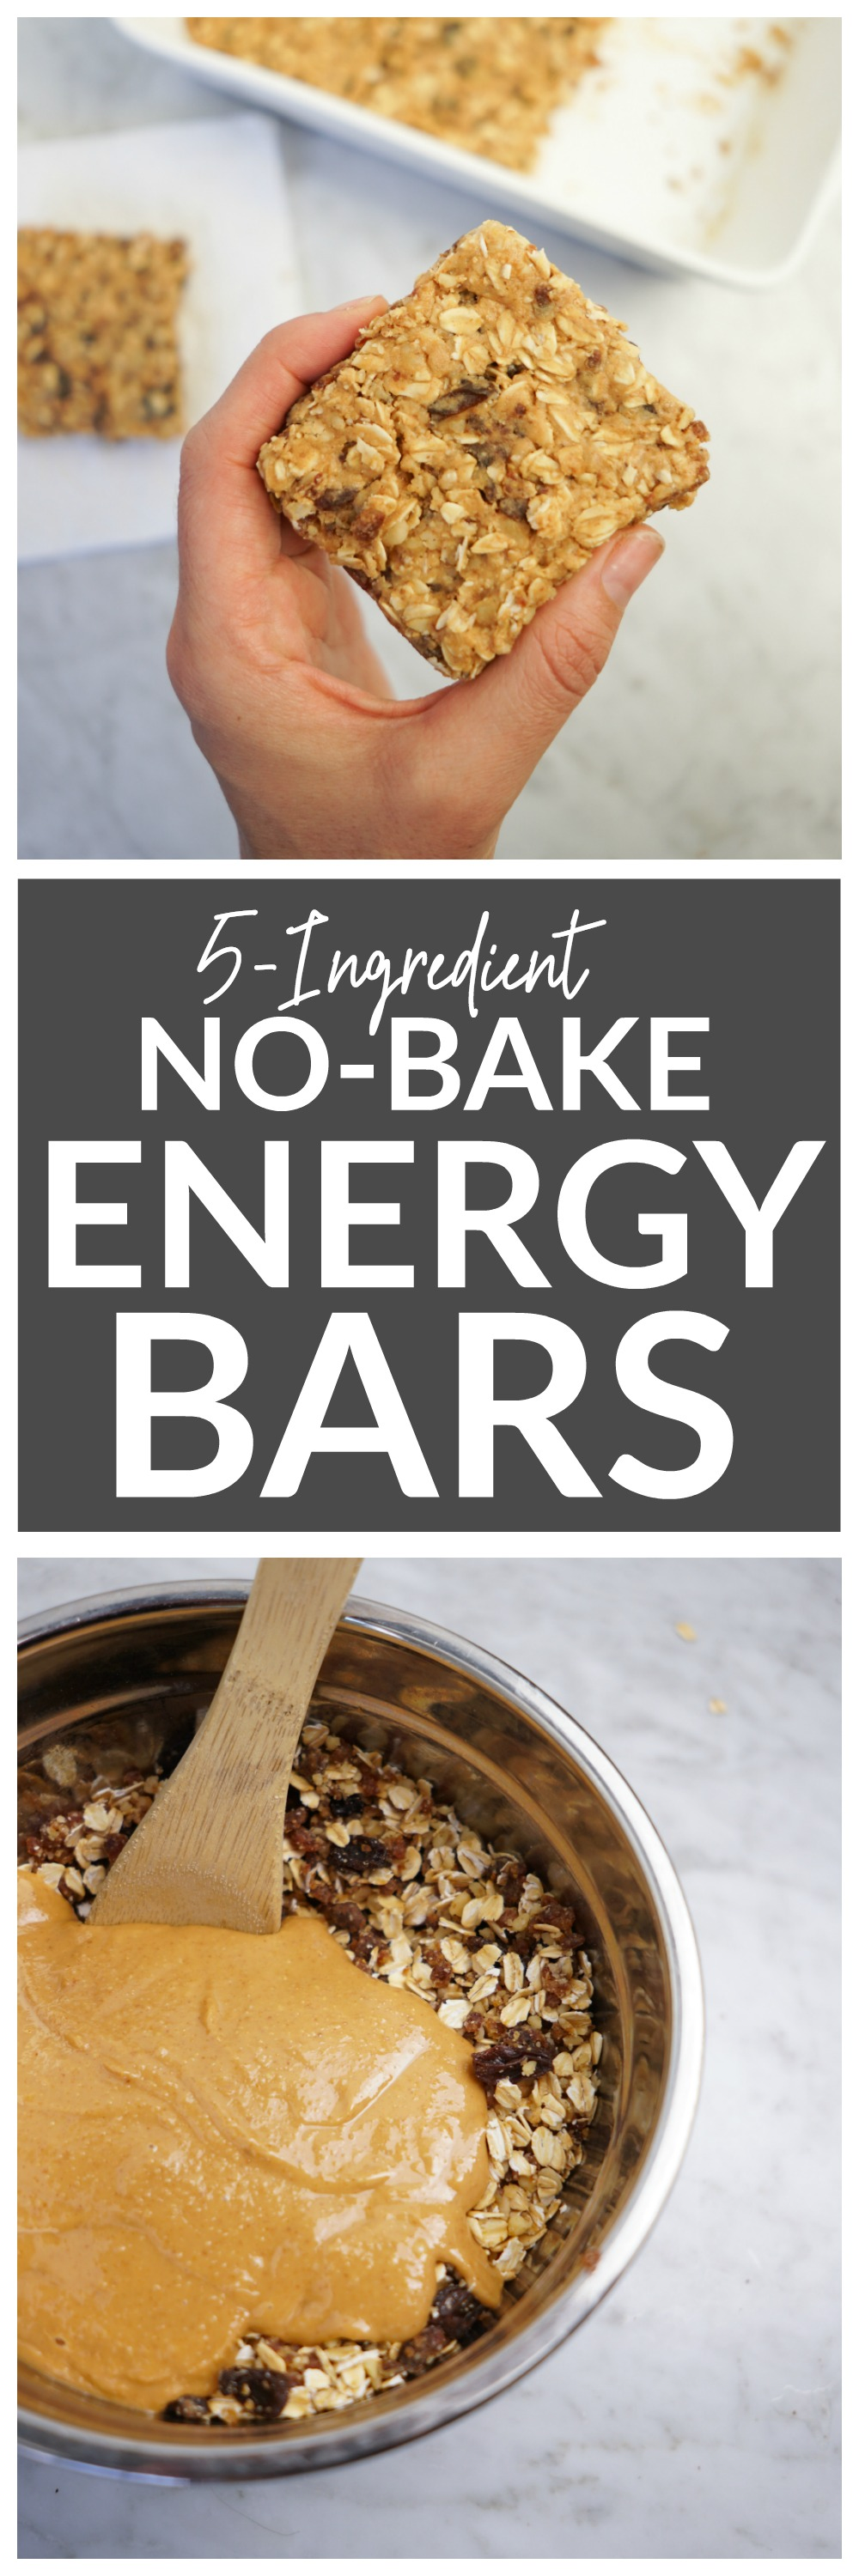 5-Ingredient No-Bake Energy Bars